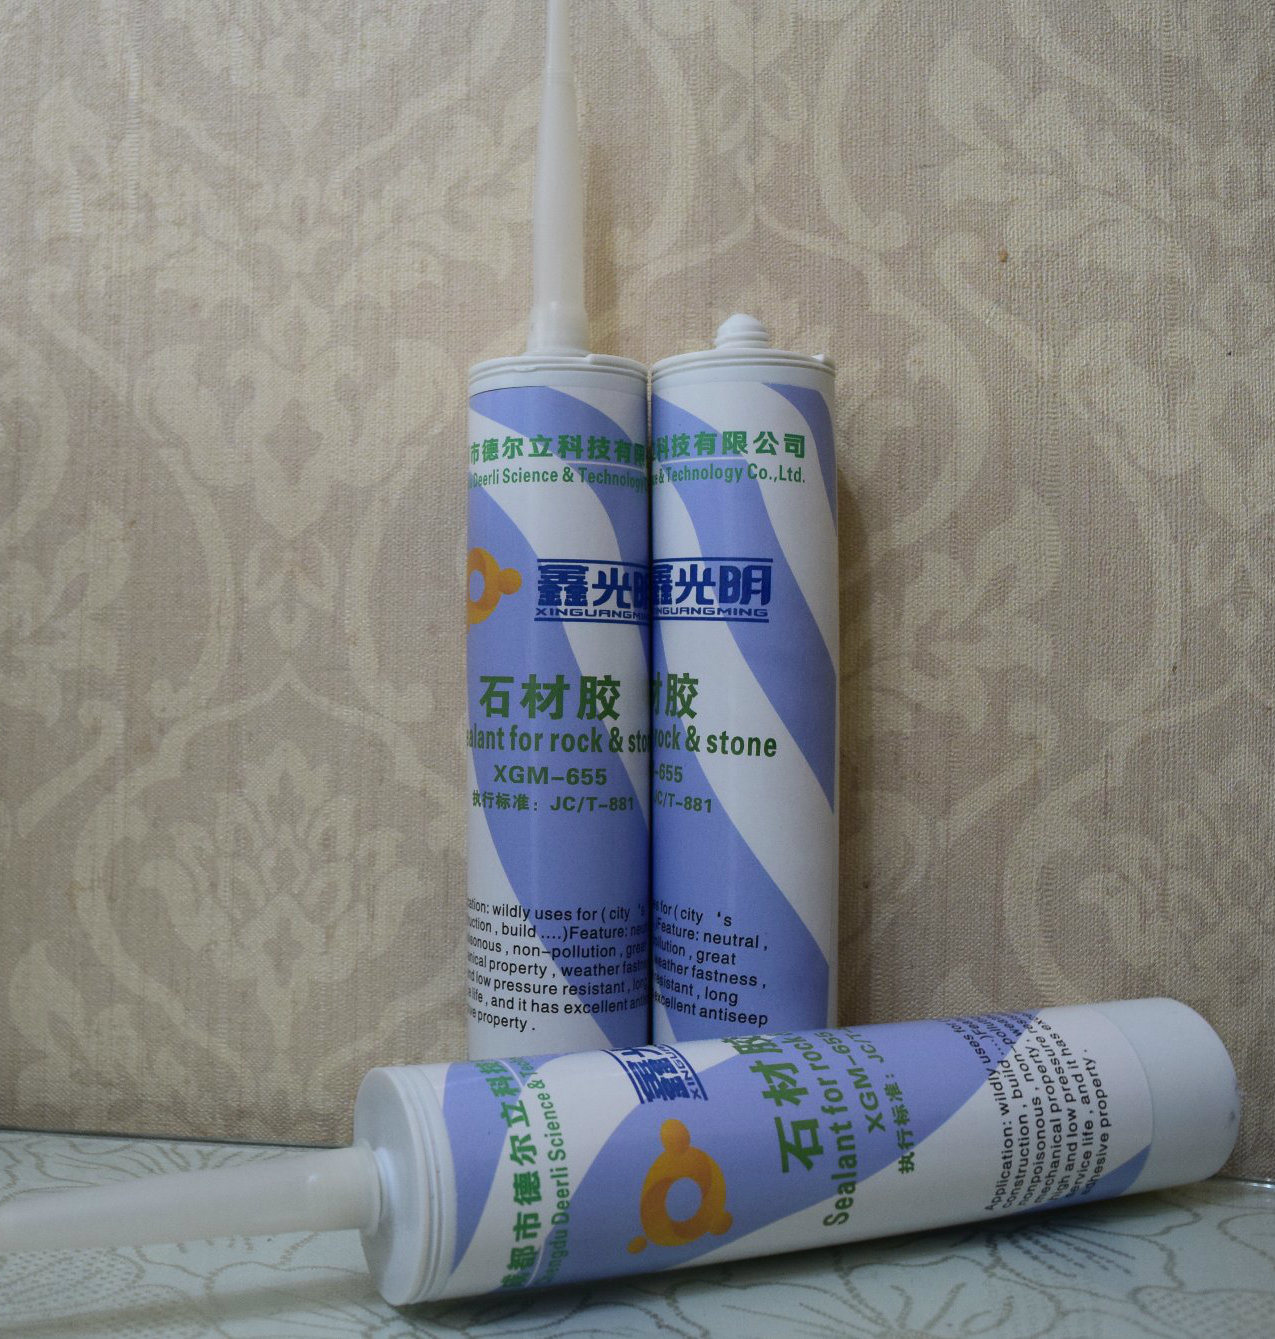 Sealant for Rock and Stone, Uses City′s Construction Neutral Adhesive